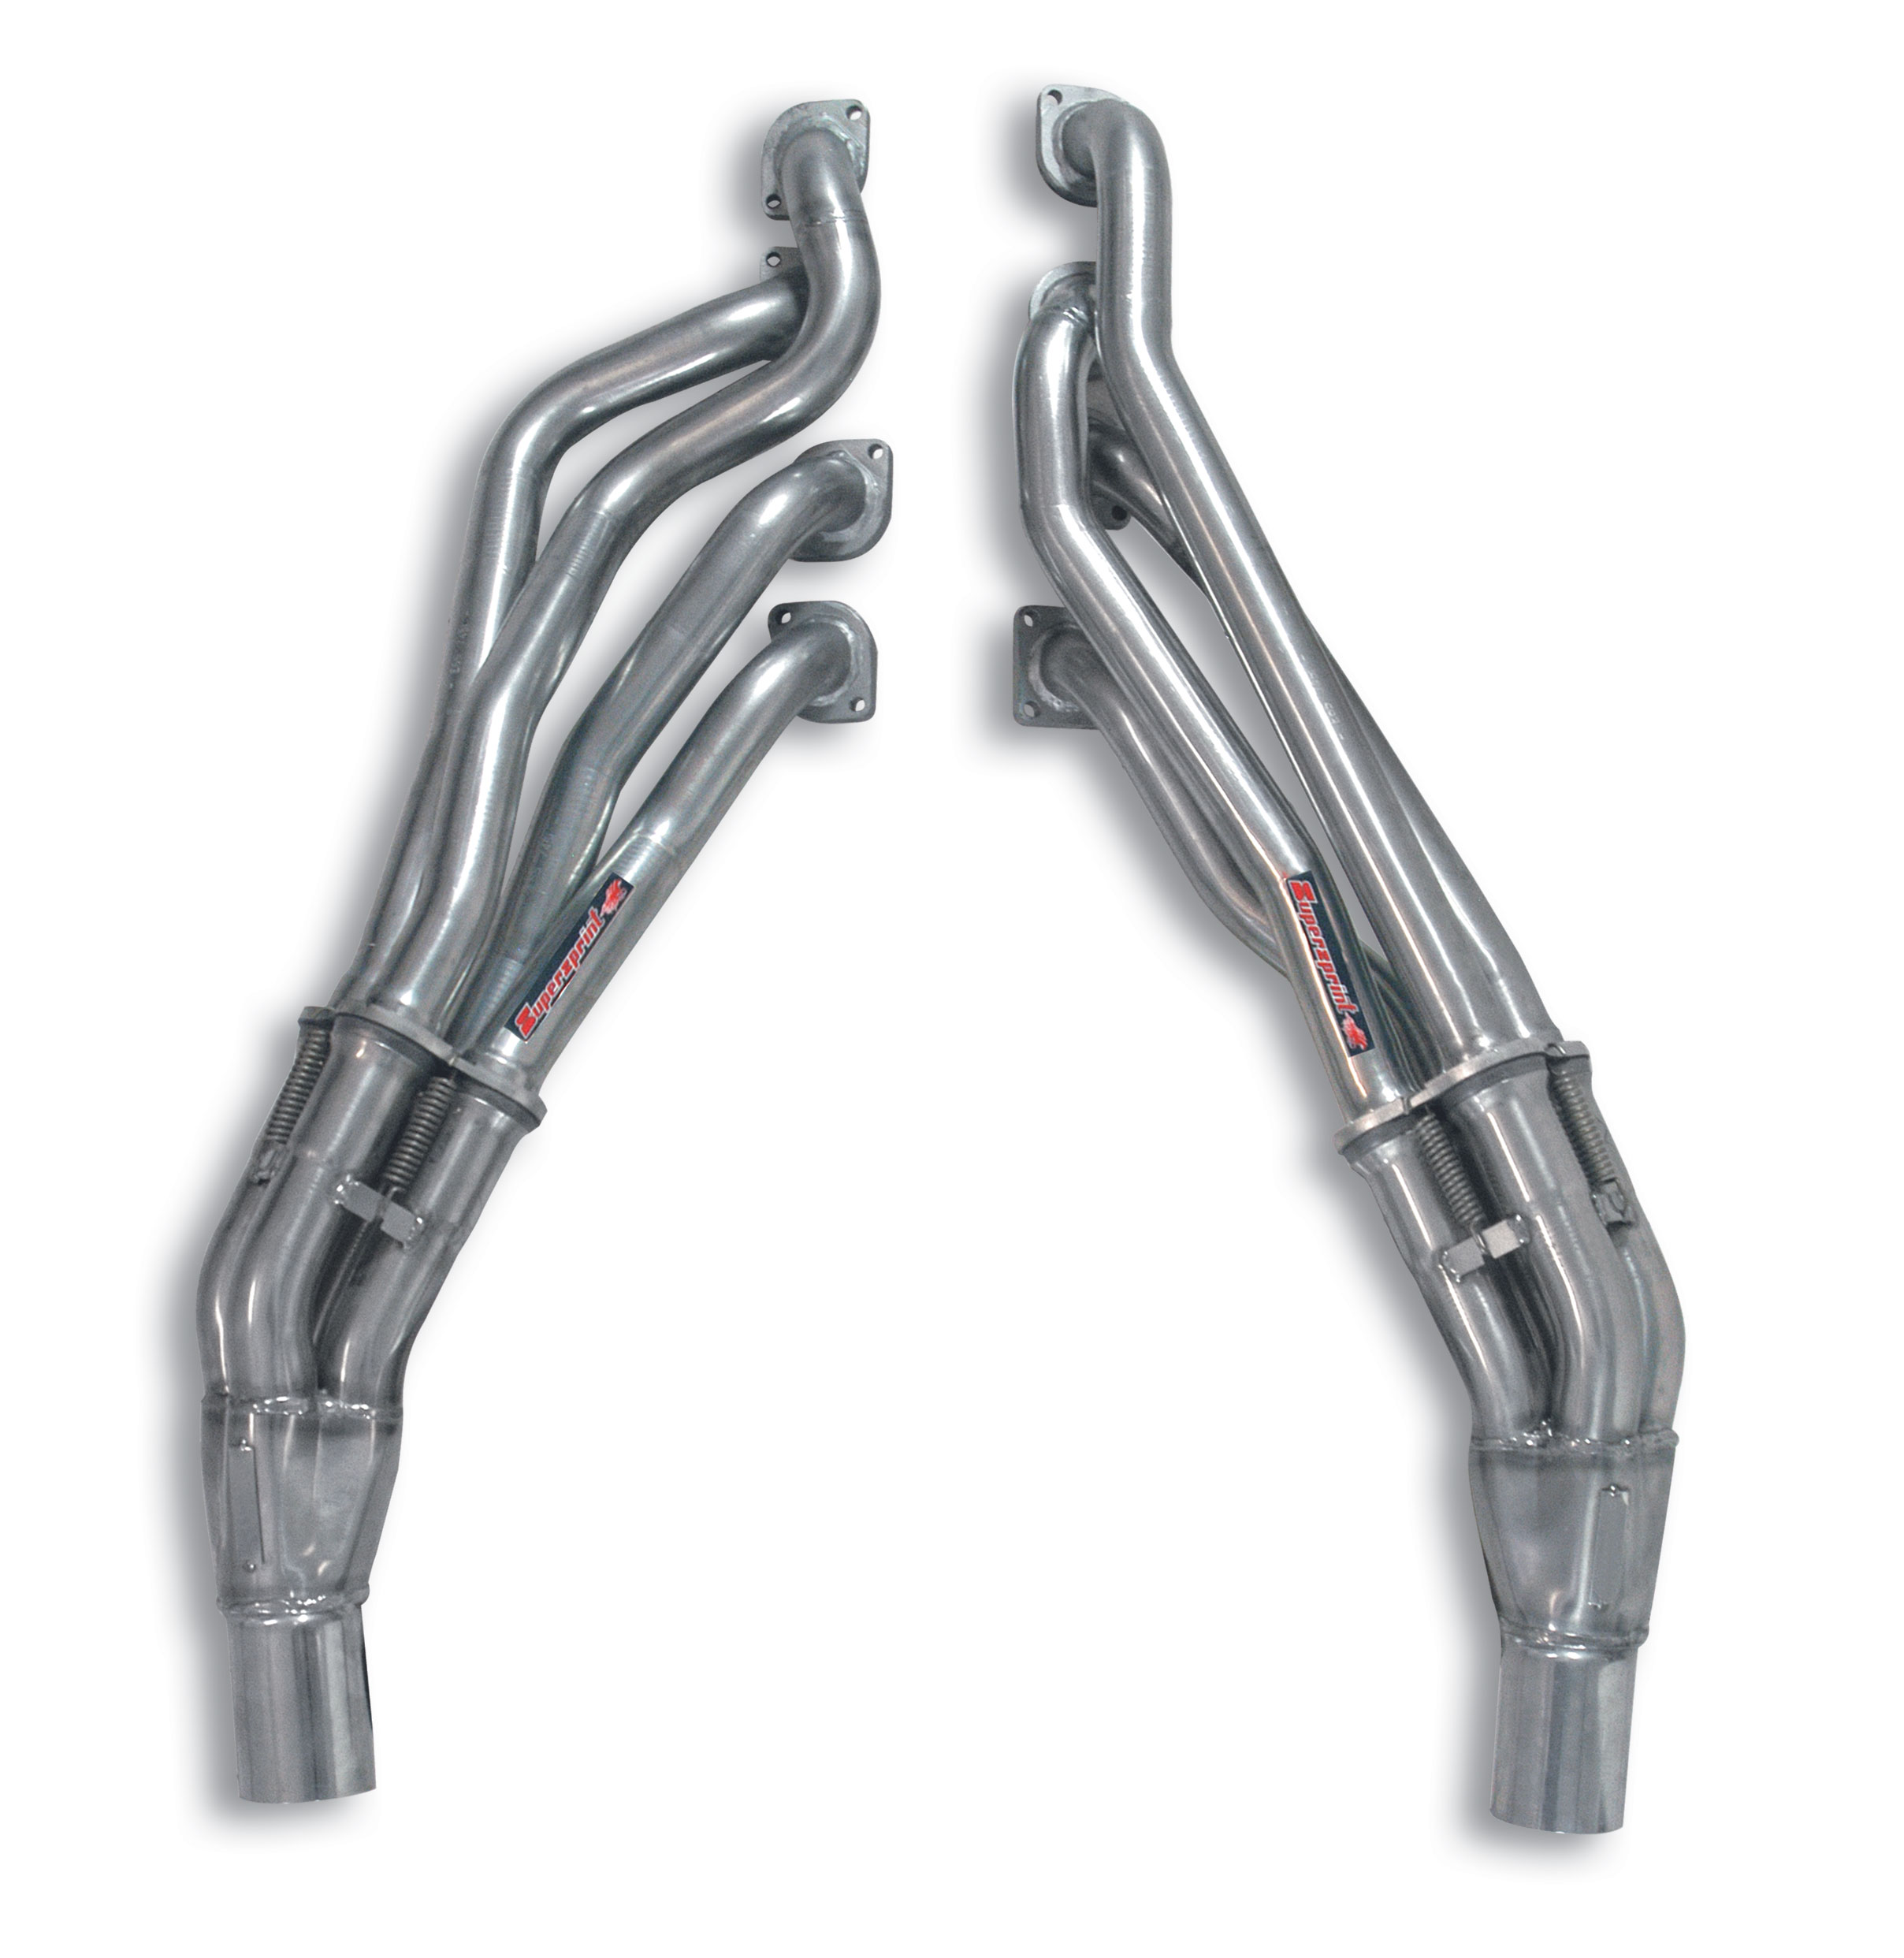 Alpina BMW - ALPINA B6 S (E63 - E64)(Coupè - Cabrio) 4.4i V8 (530 Hp) 2004 -> 2010 Manifold Right - Left<br>(Left Hand Drive)<br>SUPERSPRINT DESIGN PATENT, performance exhaust systems